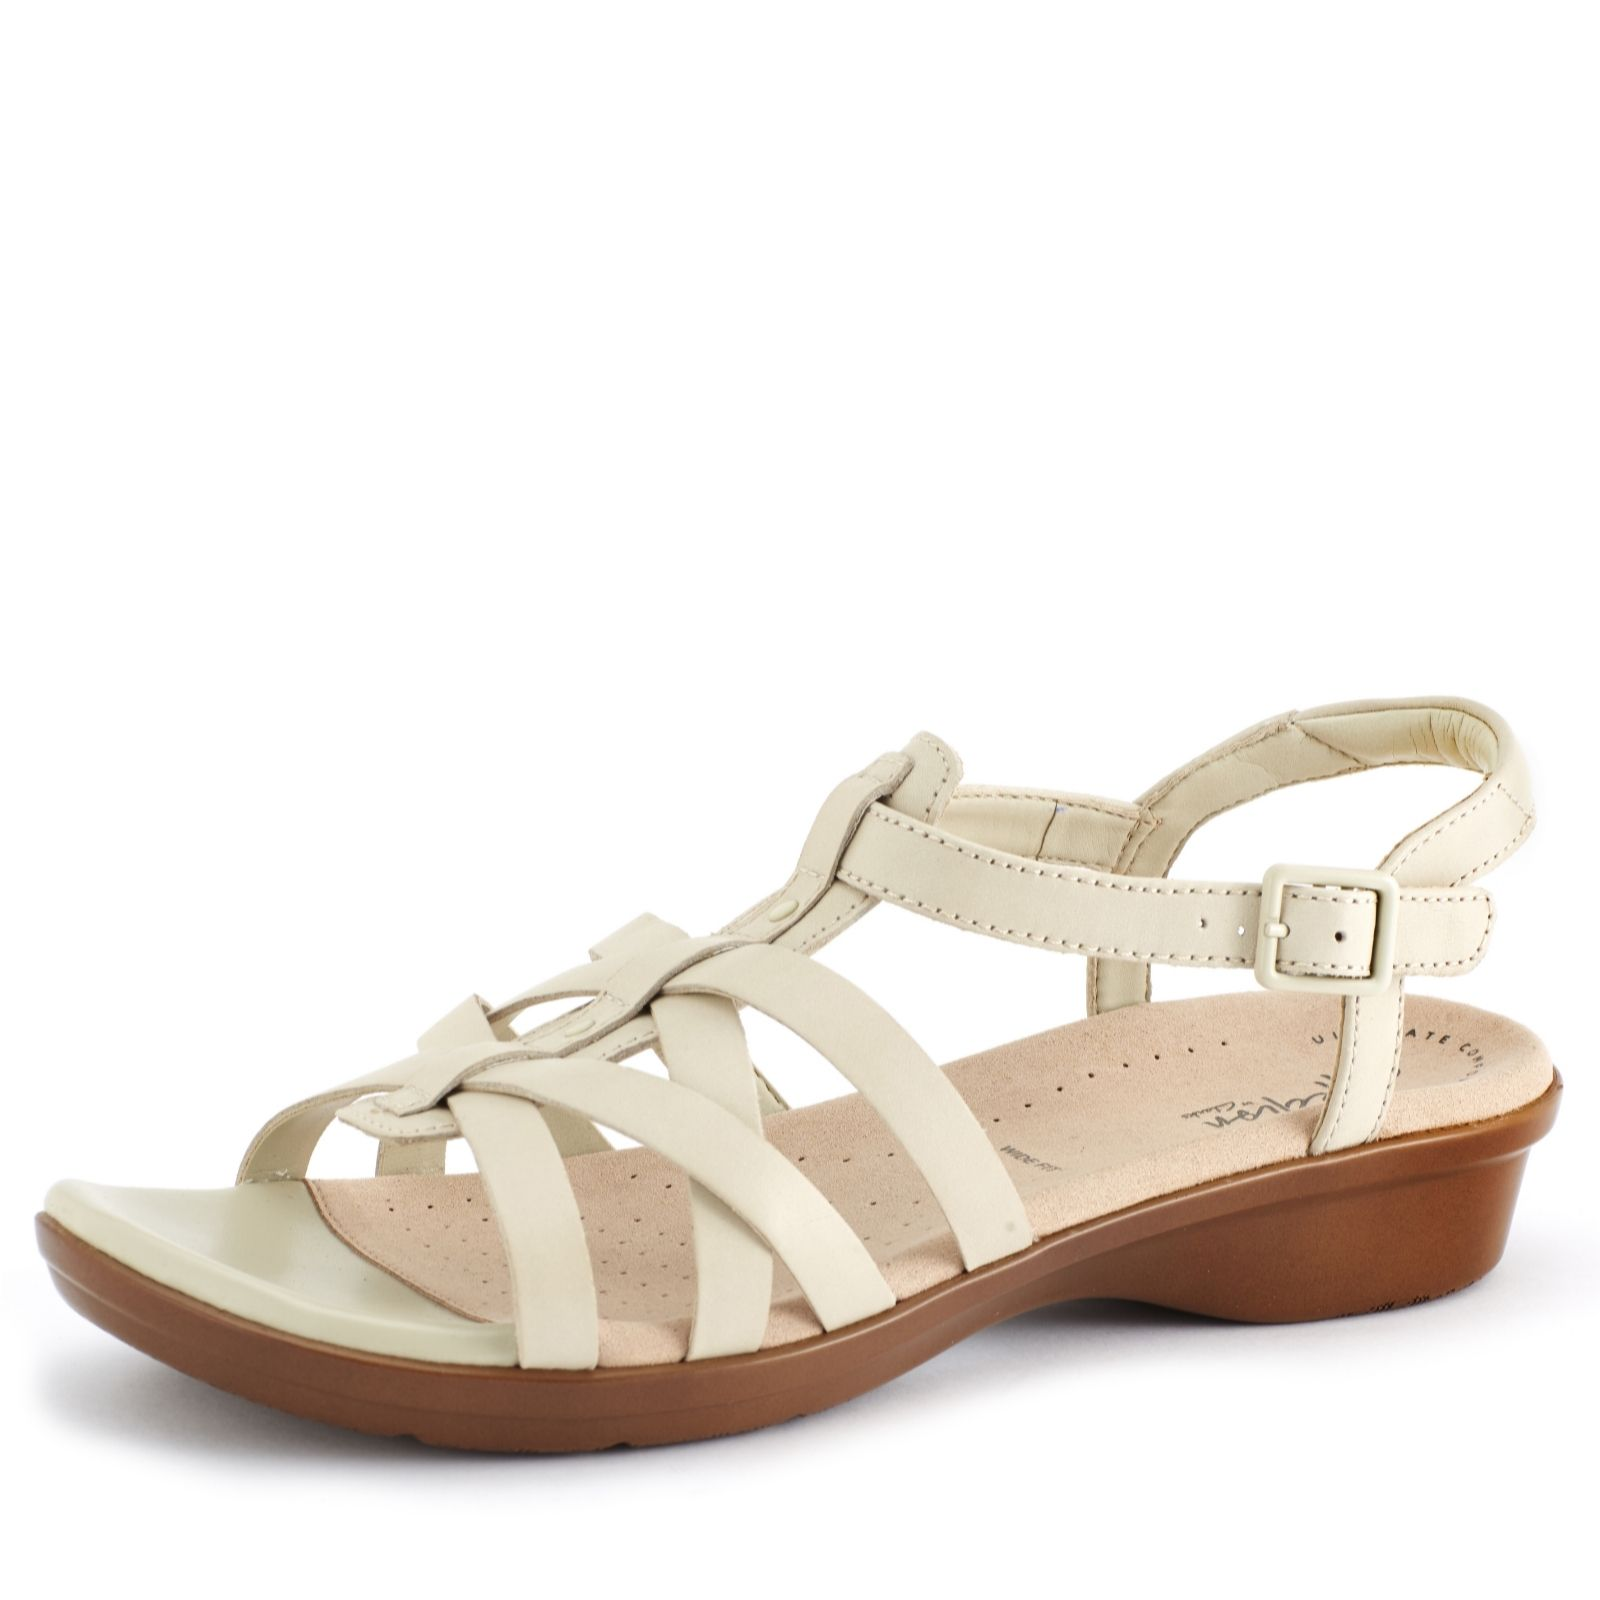 6369c7ab Clarks Loomis Katey Sandal Wide Fit - QVC UK